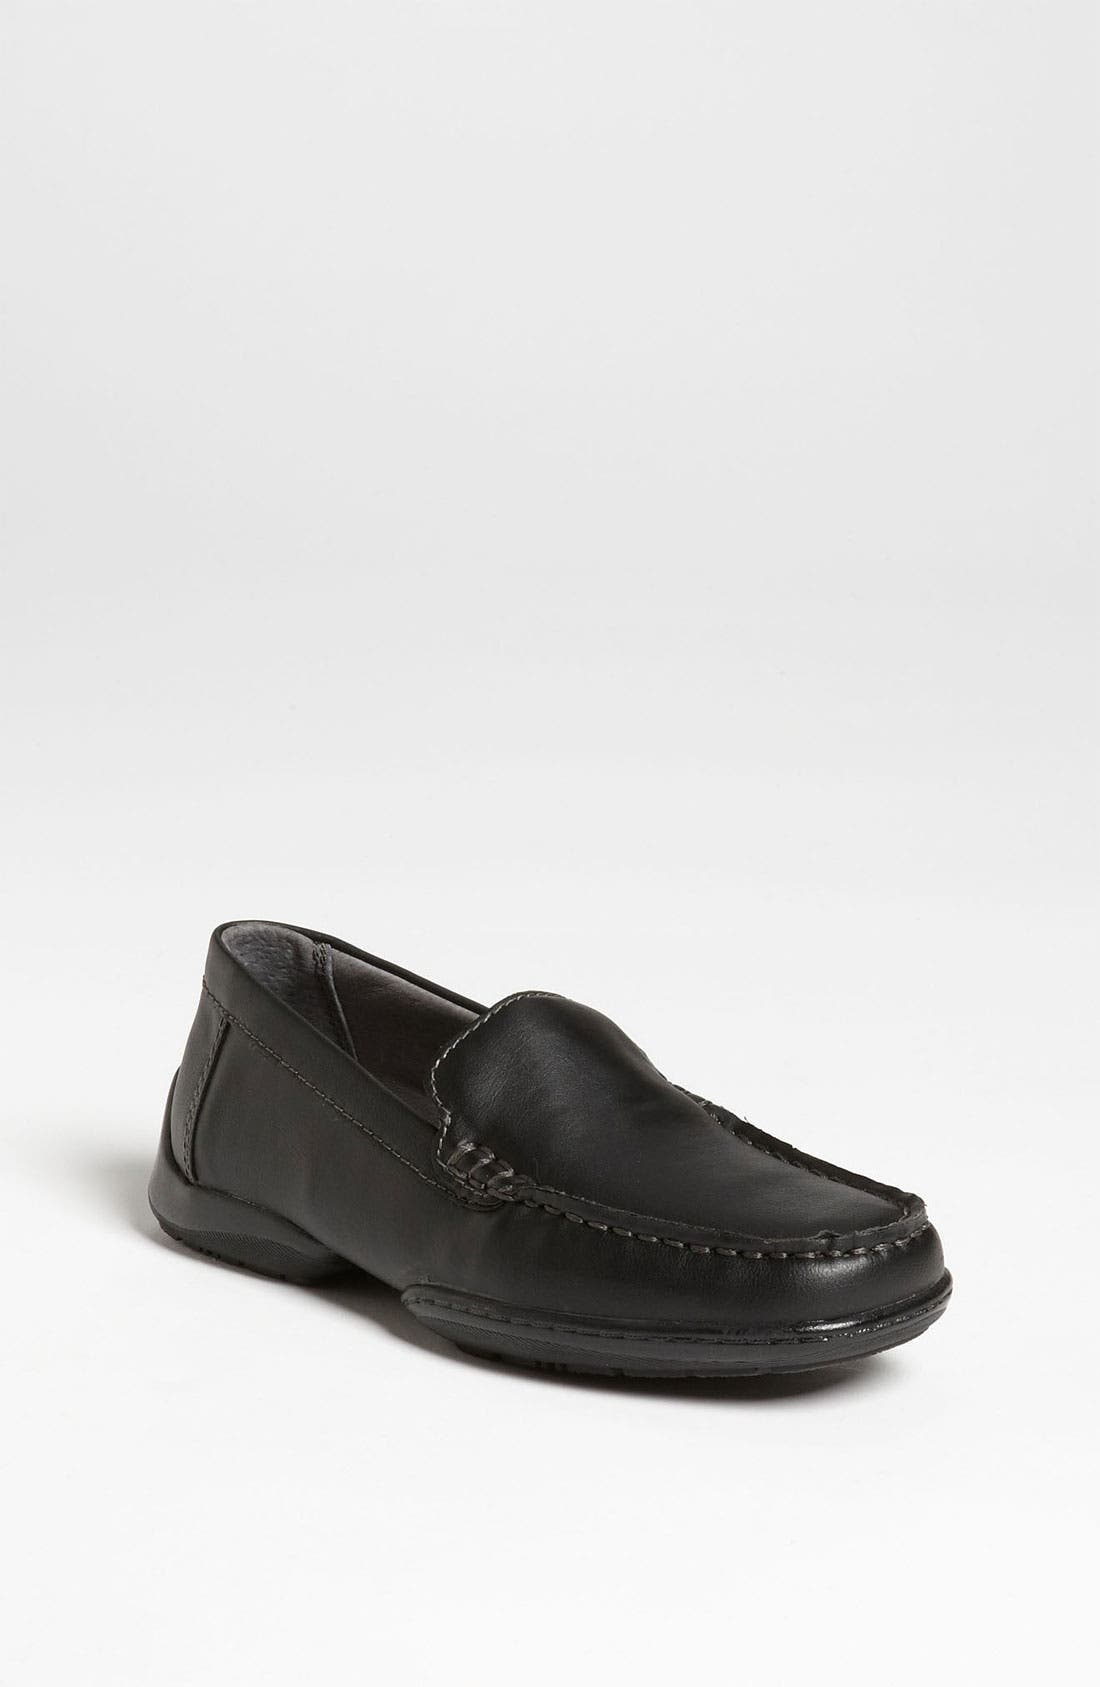 Alternate Image 1 Selected - Nordstrom 'Tanner' Loafer (Toddler, Little Kid & Big Kid)